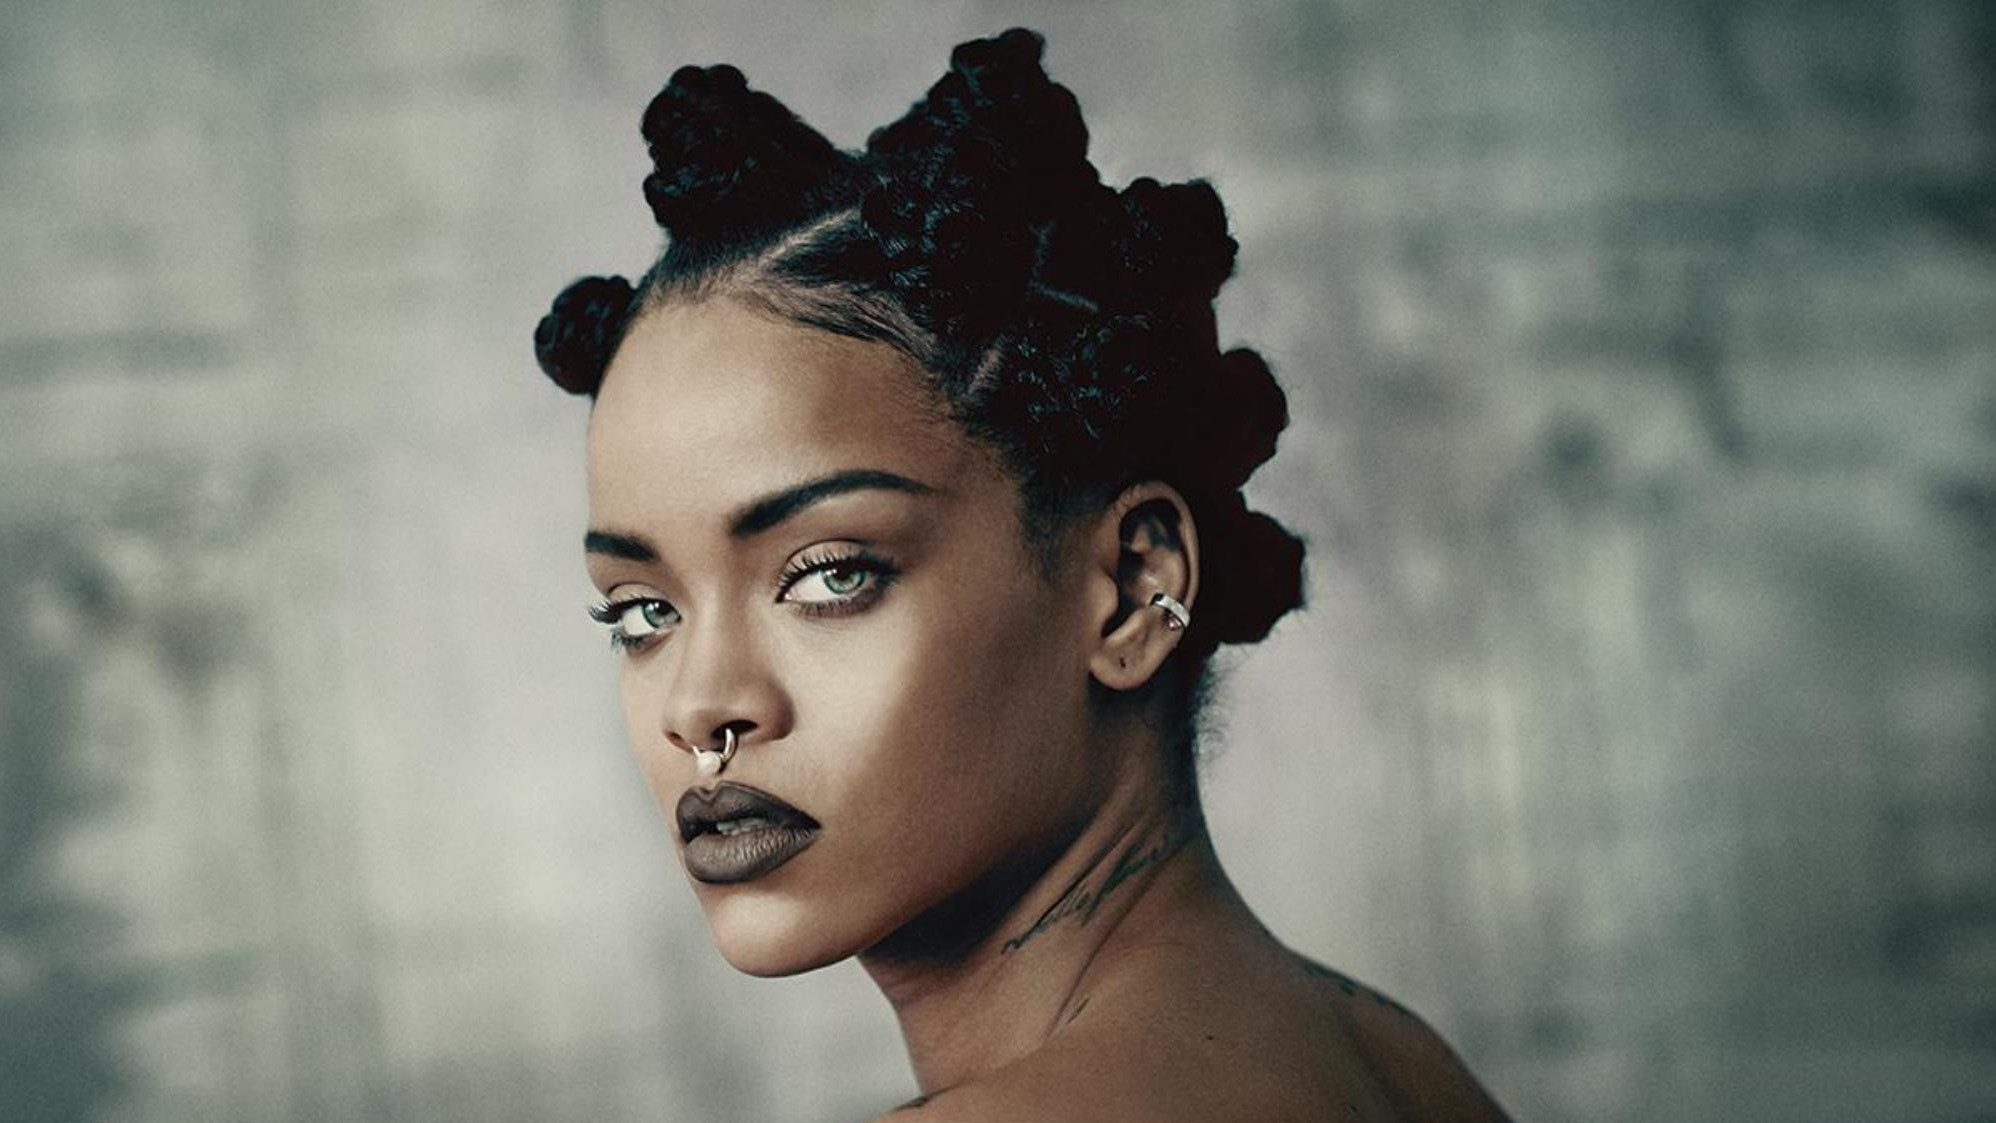 rihanna is starring in an art-rock music drama with adam driver